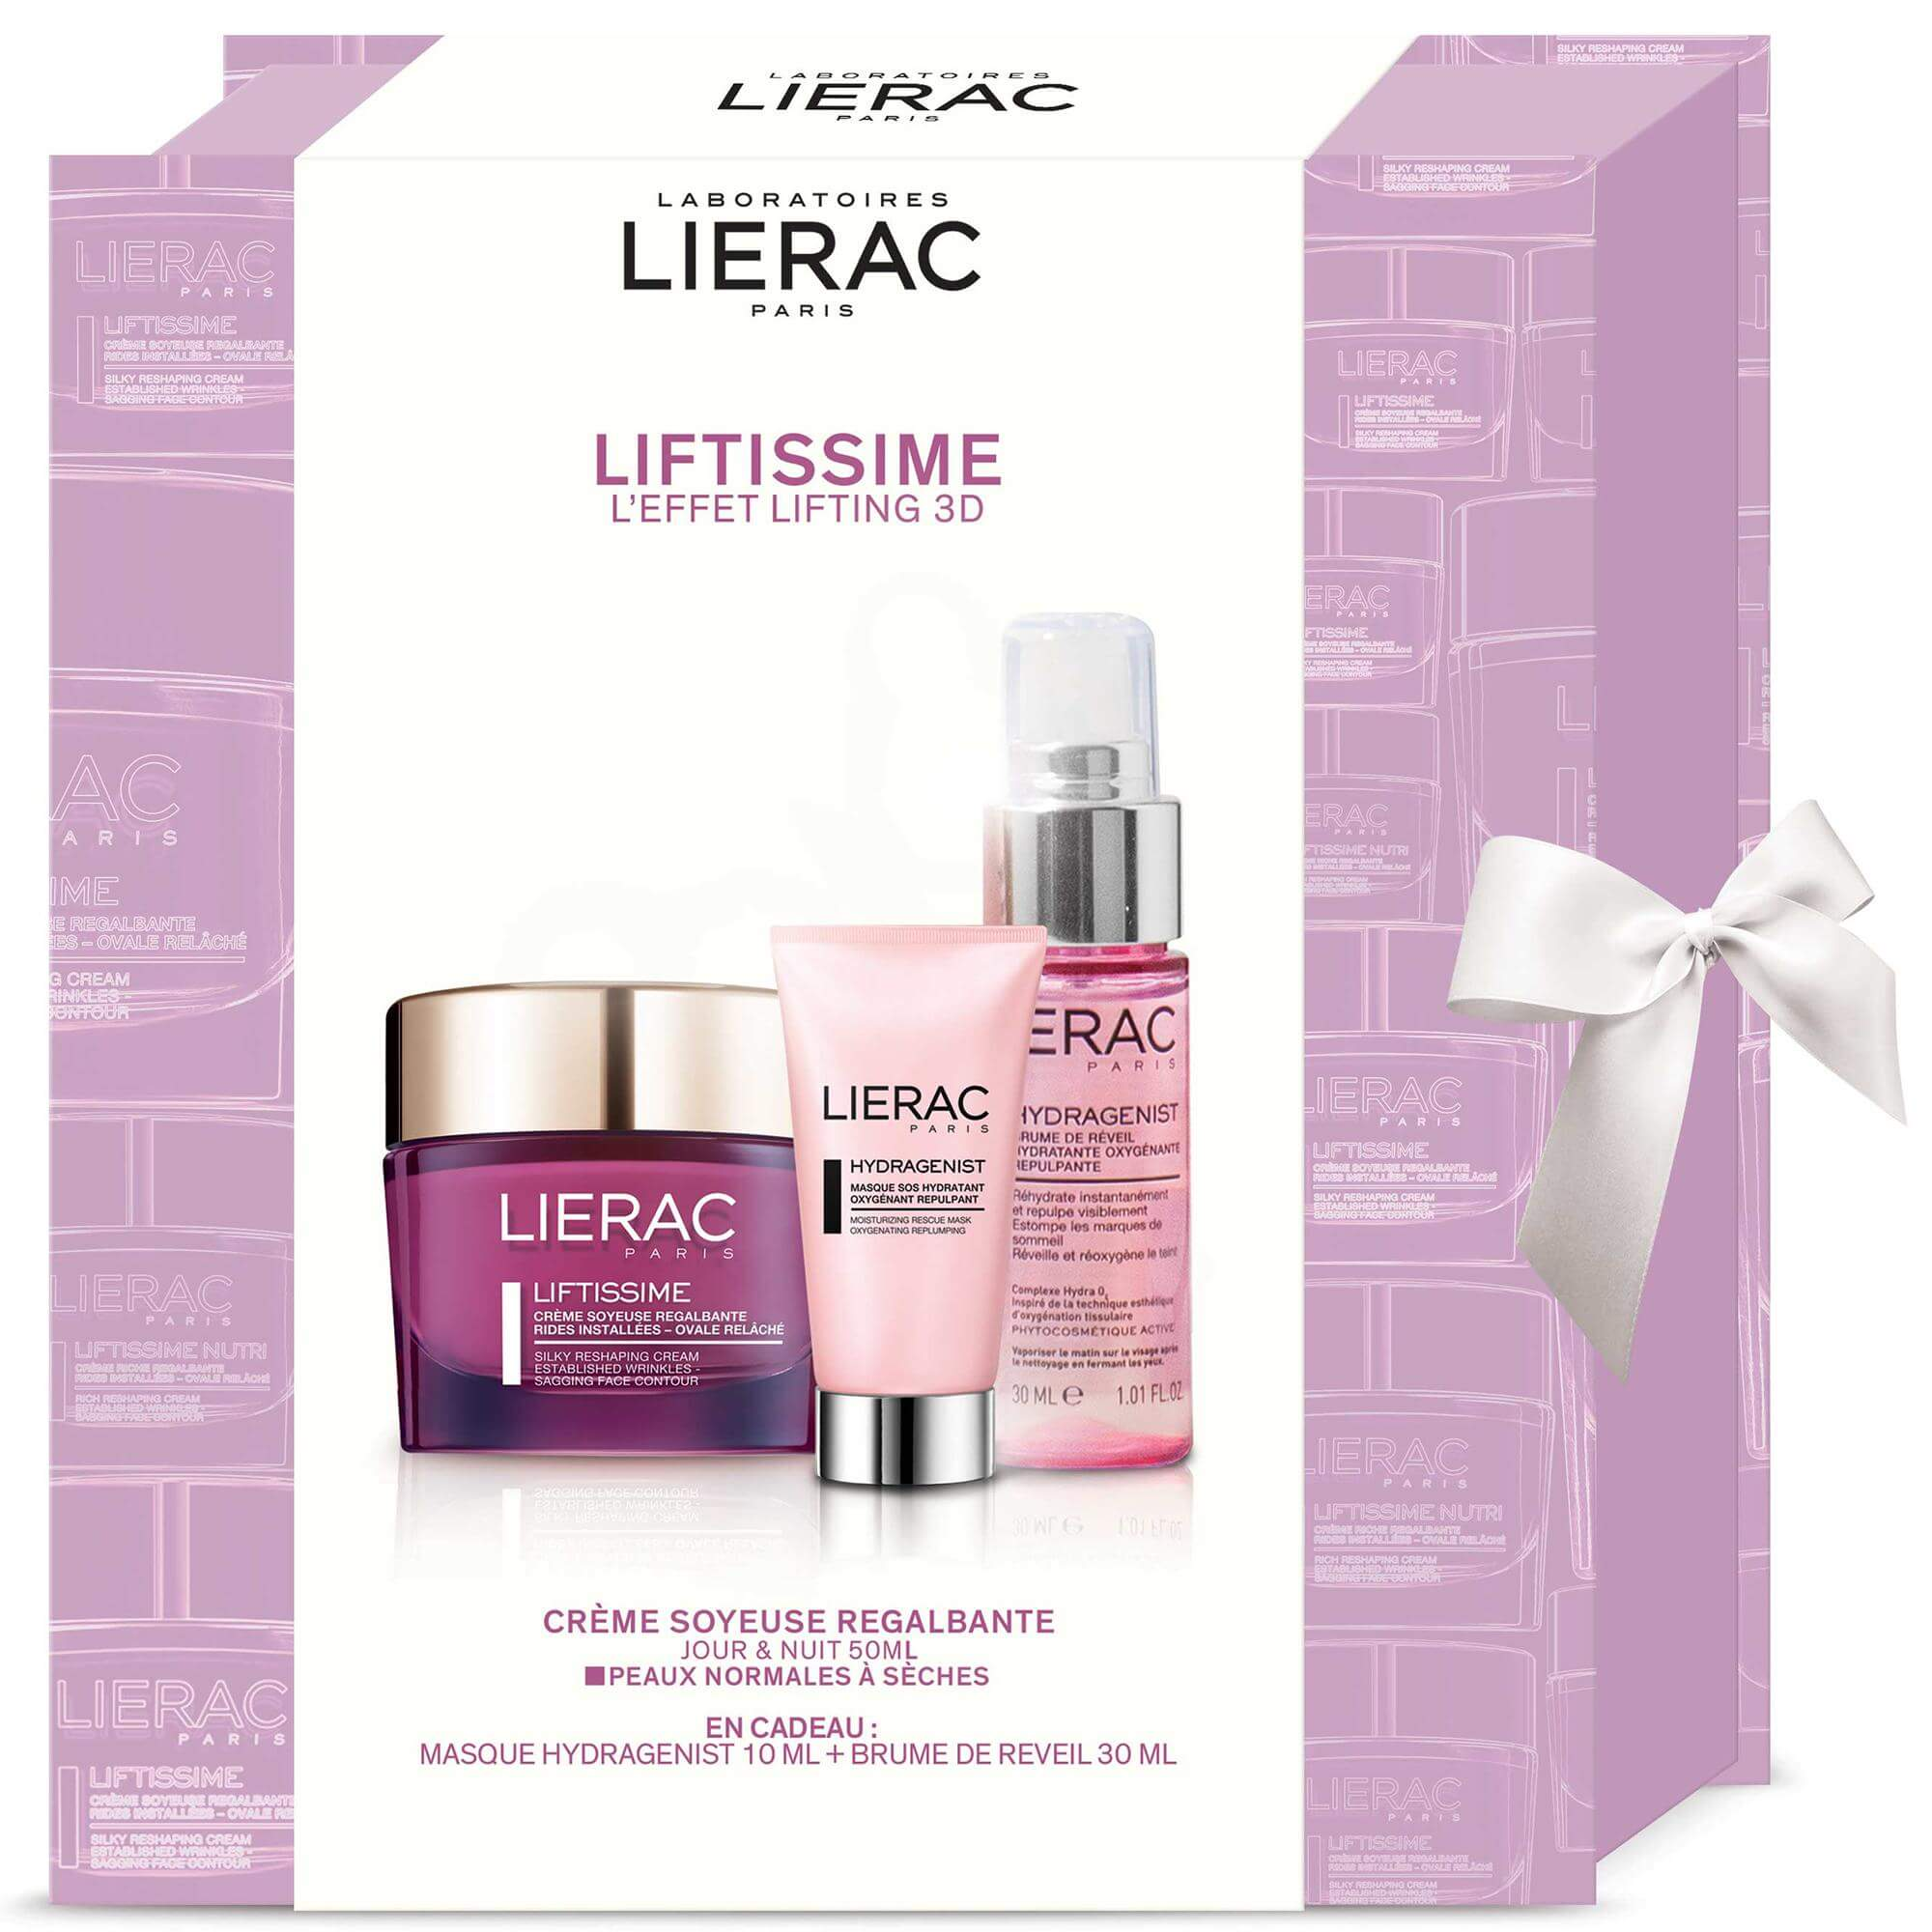 Lierac Πακέτο Προσφοράς Liftissime Creme Soyeuse 50ml & Δώρο Hydragenist Masque 10ml & Brume de Reveil 30ml